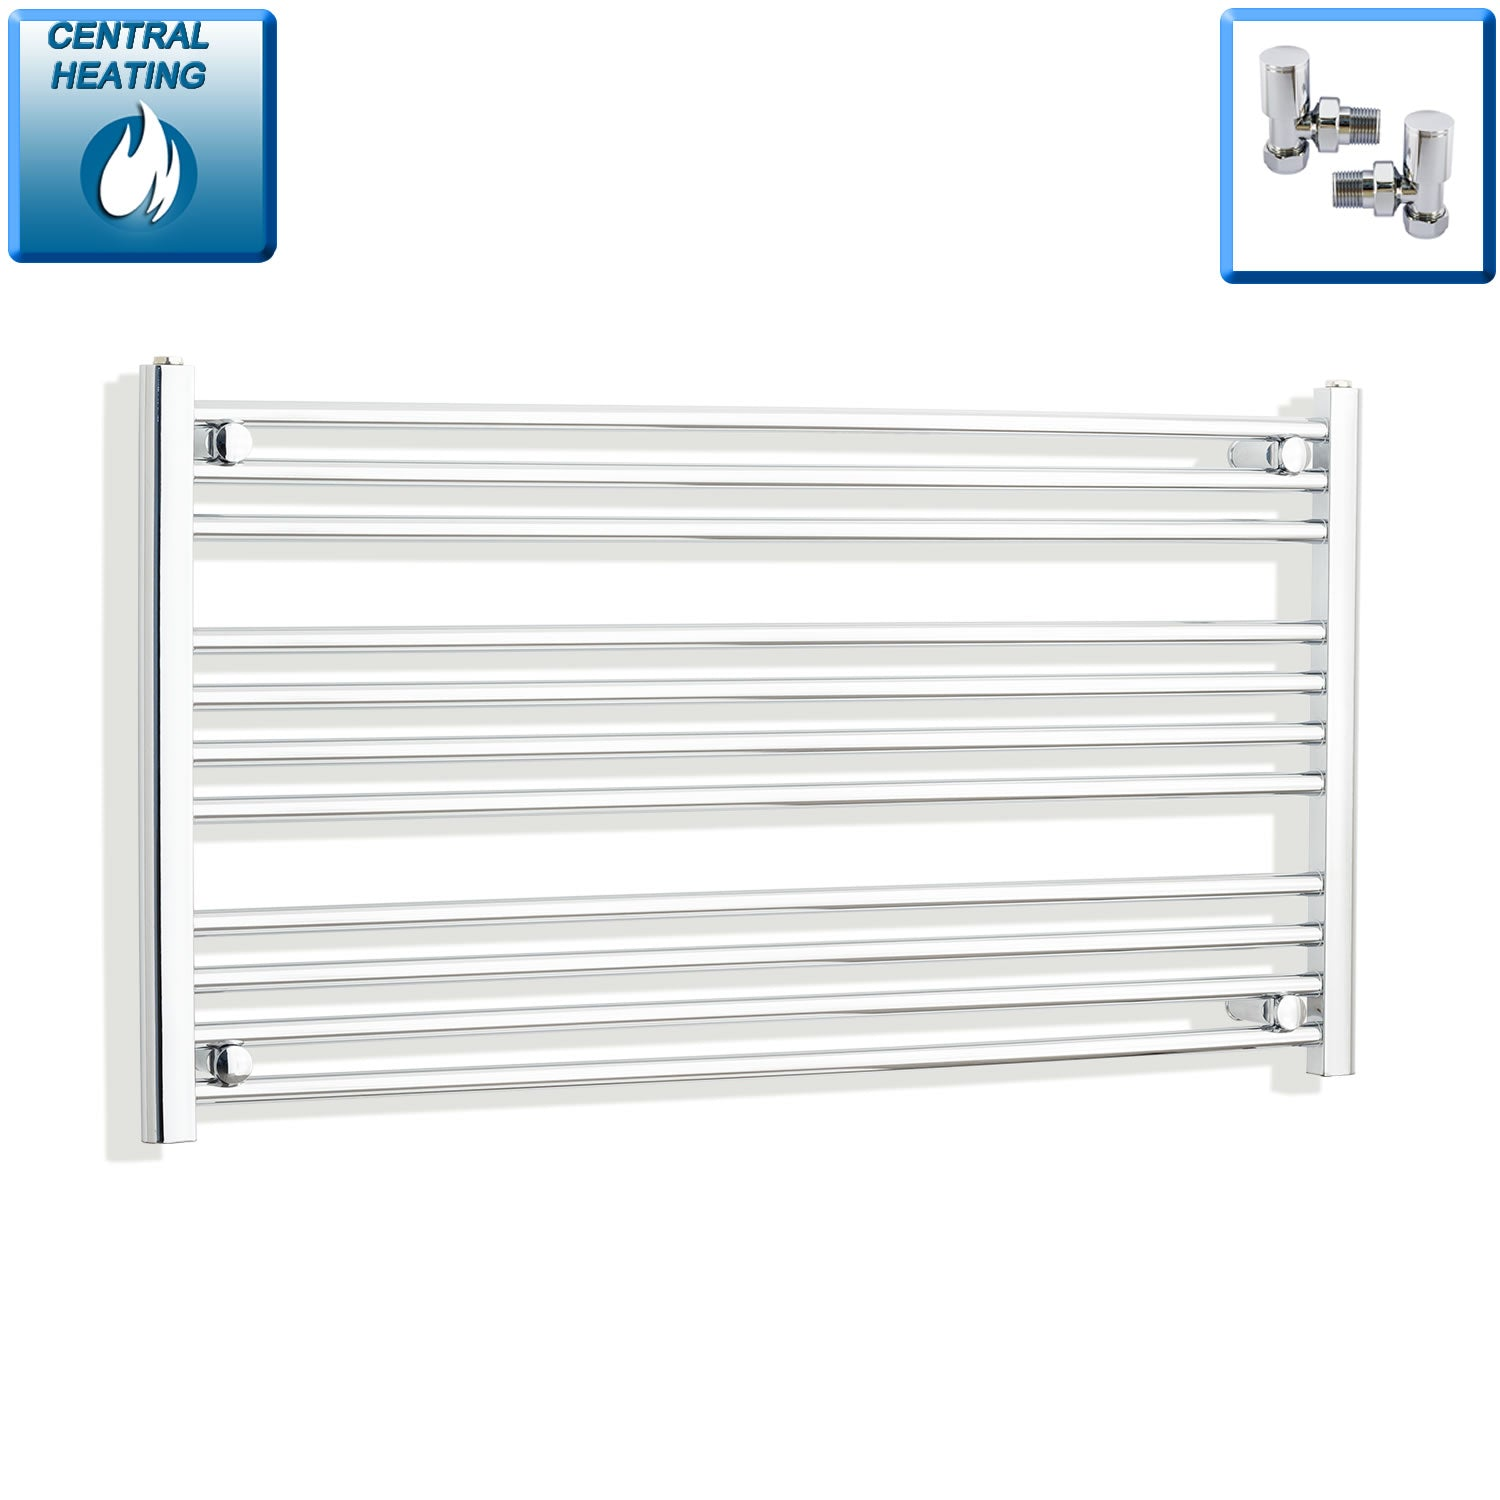 1100mm Wide 600mm High Chrome Towel Rail Radiator With Angled Valve